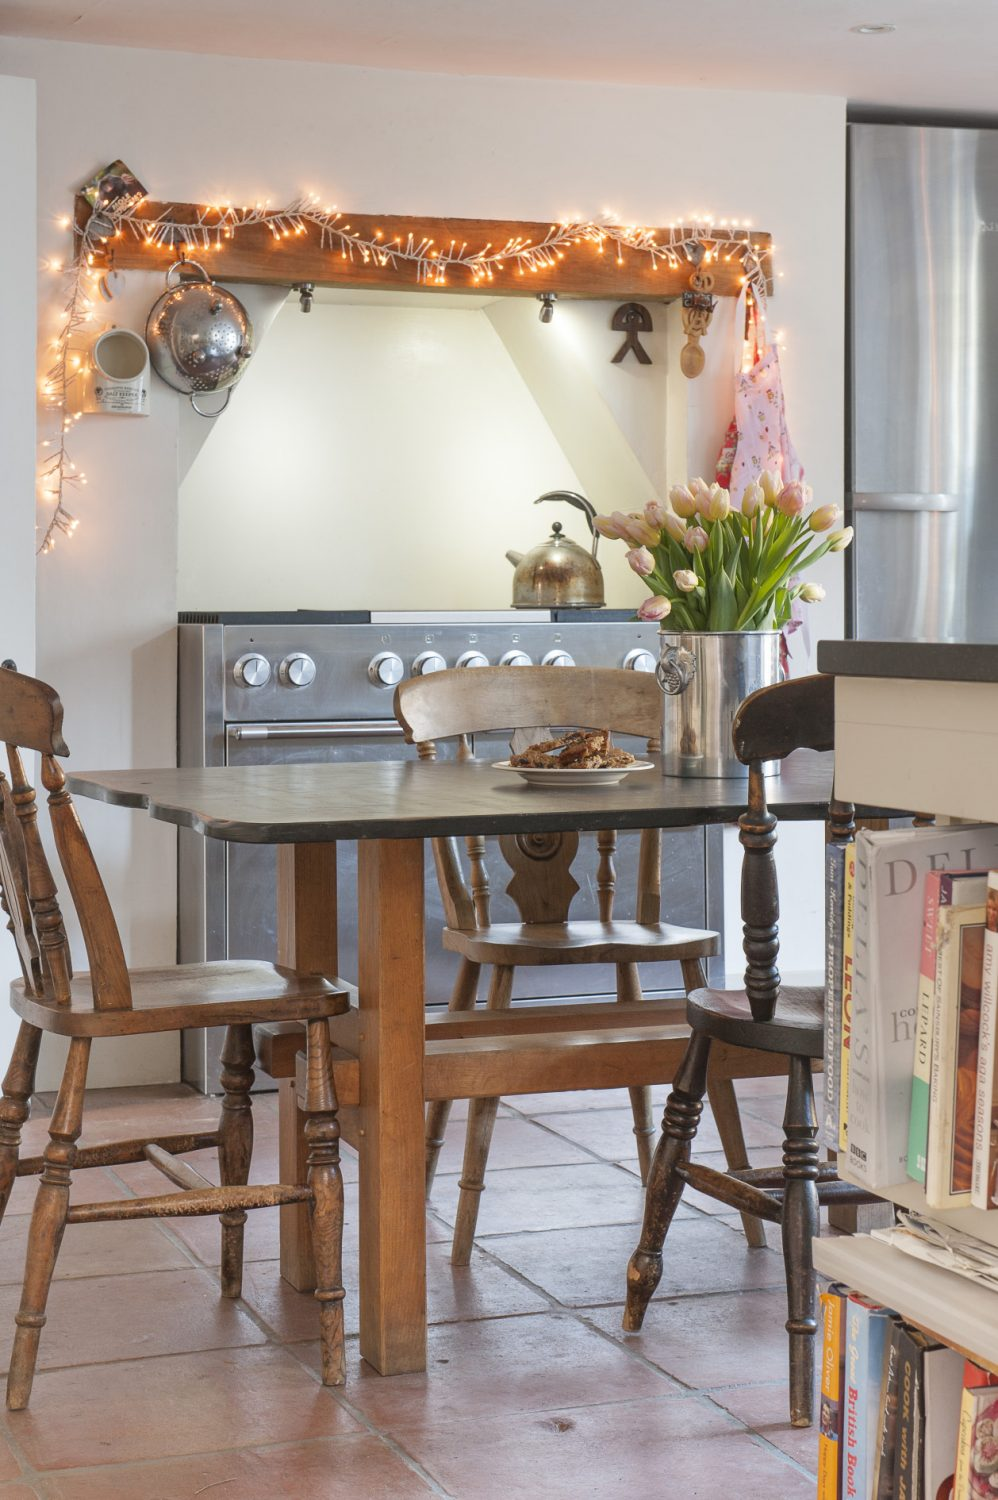 The cottage kitchen is tailor-made Shaker with black granite surfaces that complement the slate kitchen table that was once a potting table from a greenhouse in Brighton. The cooker is a serious Mercury range, a testament to Adrian's skills as a chef